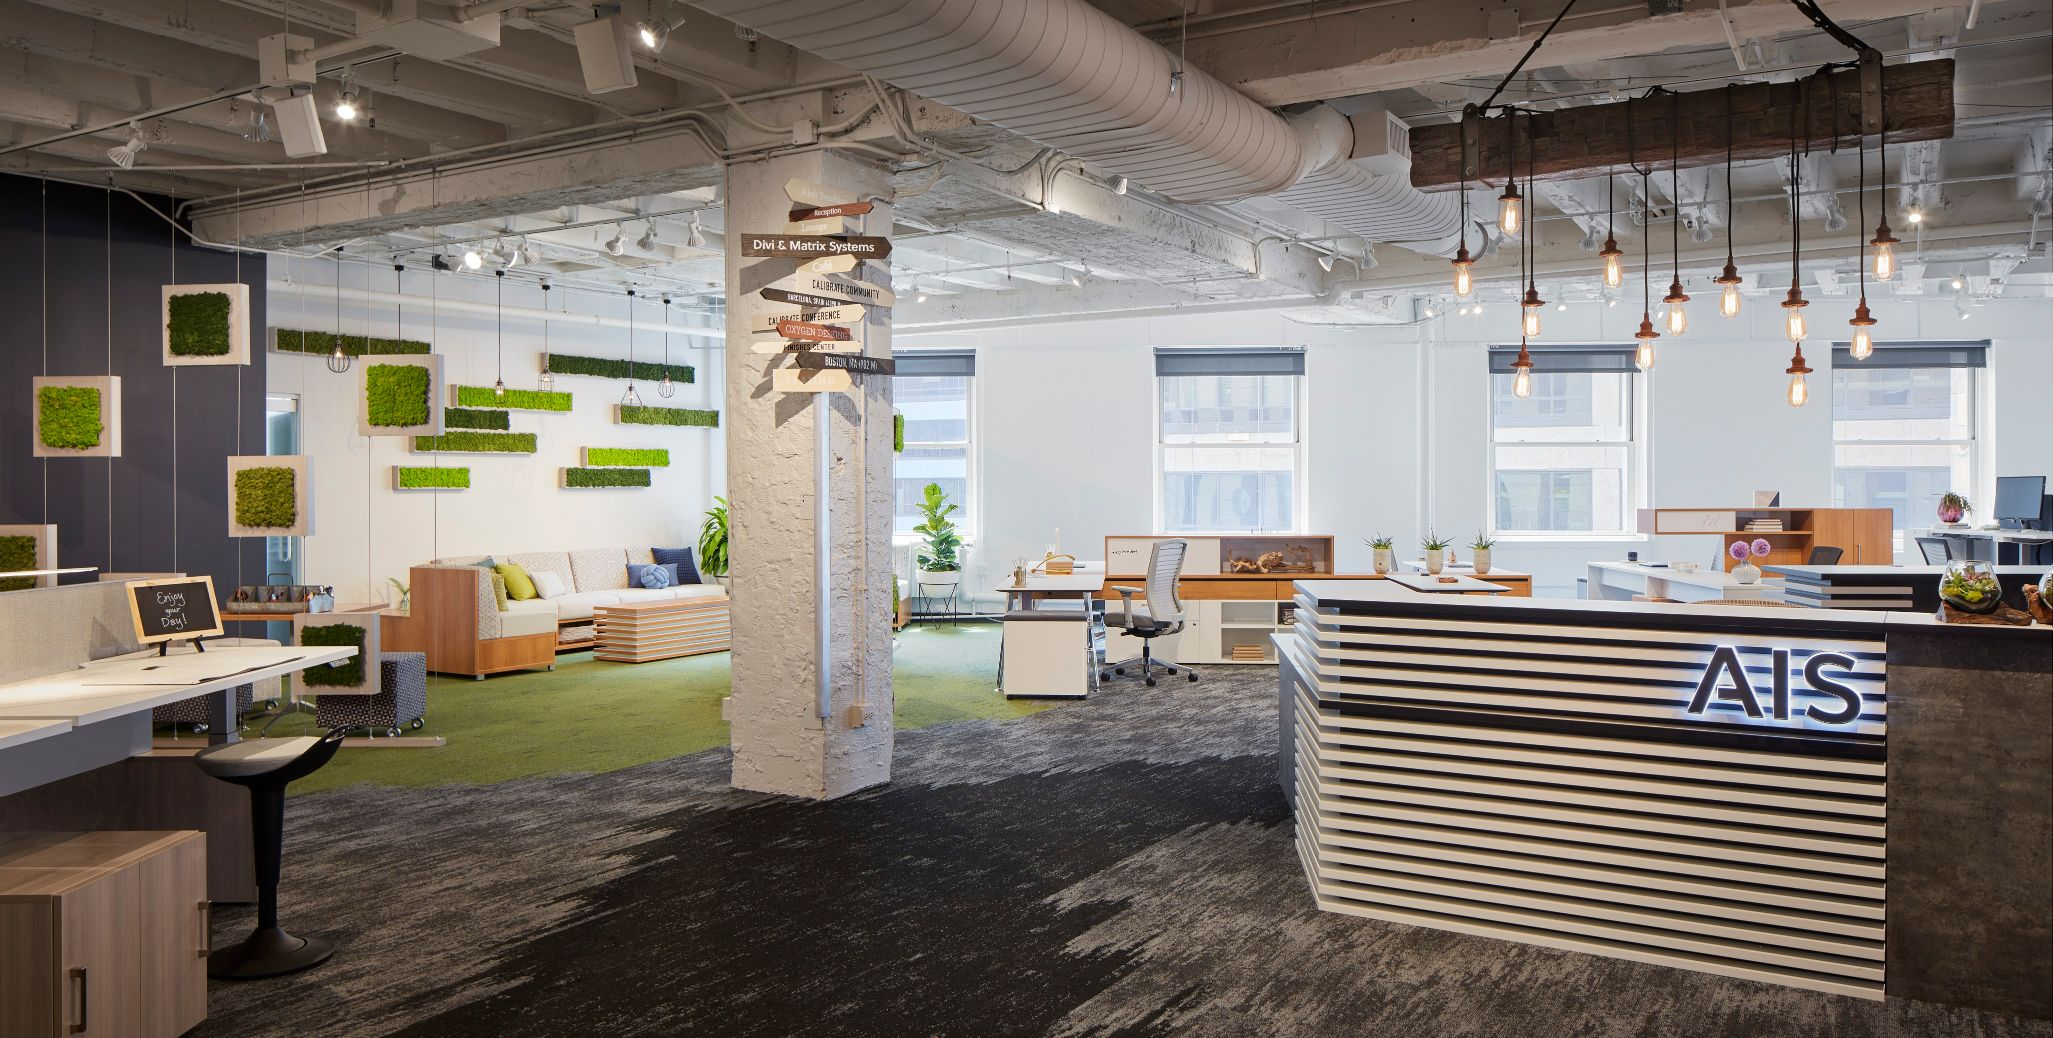 ais-chicago-showroom-at-neocon-2018-with-custom-reception-lb-lounge-rutland-perch-seating-and-calibrate-community_md